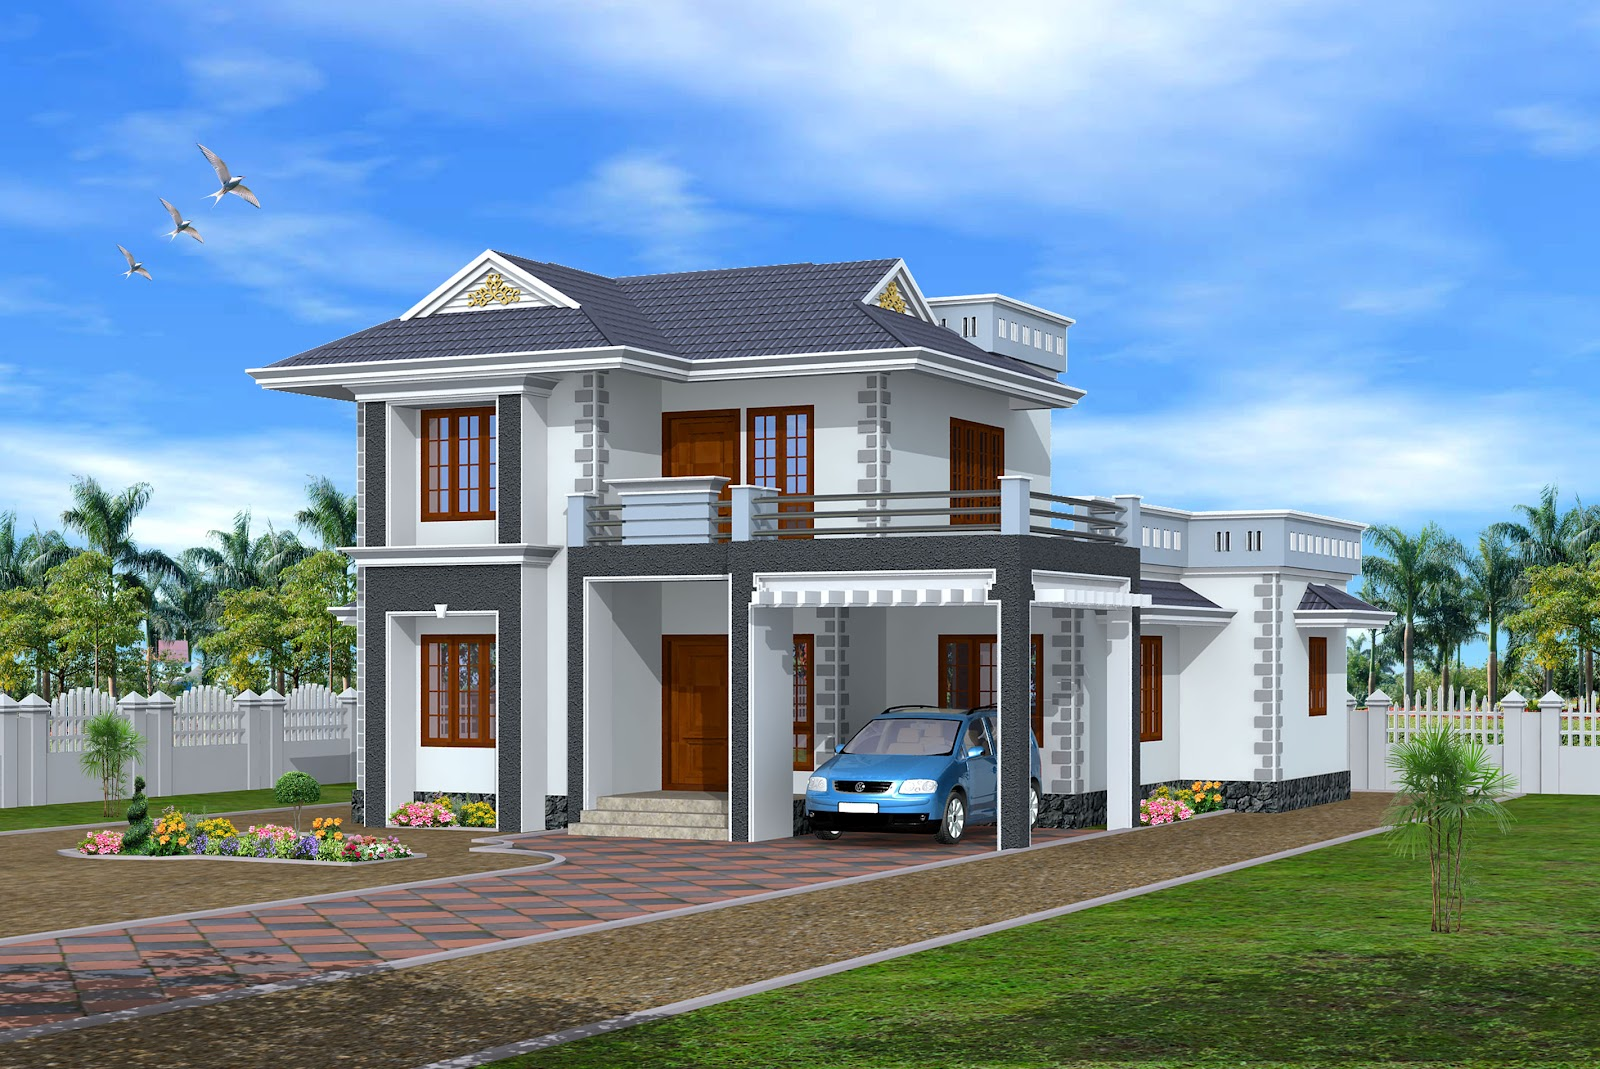 New home designs latest modern homes exterior designs views for Home design ideas in pakistan